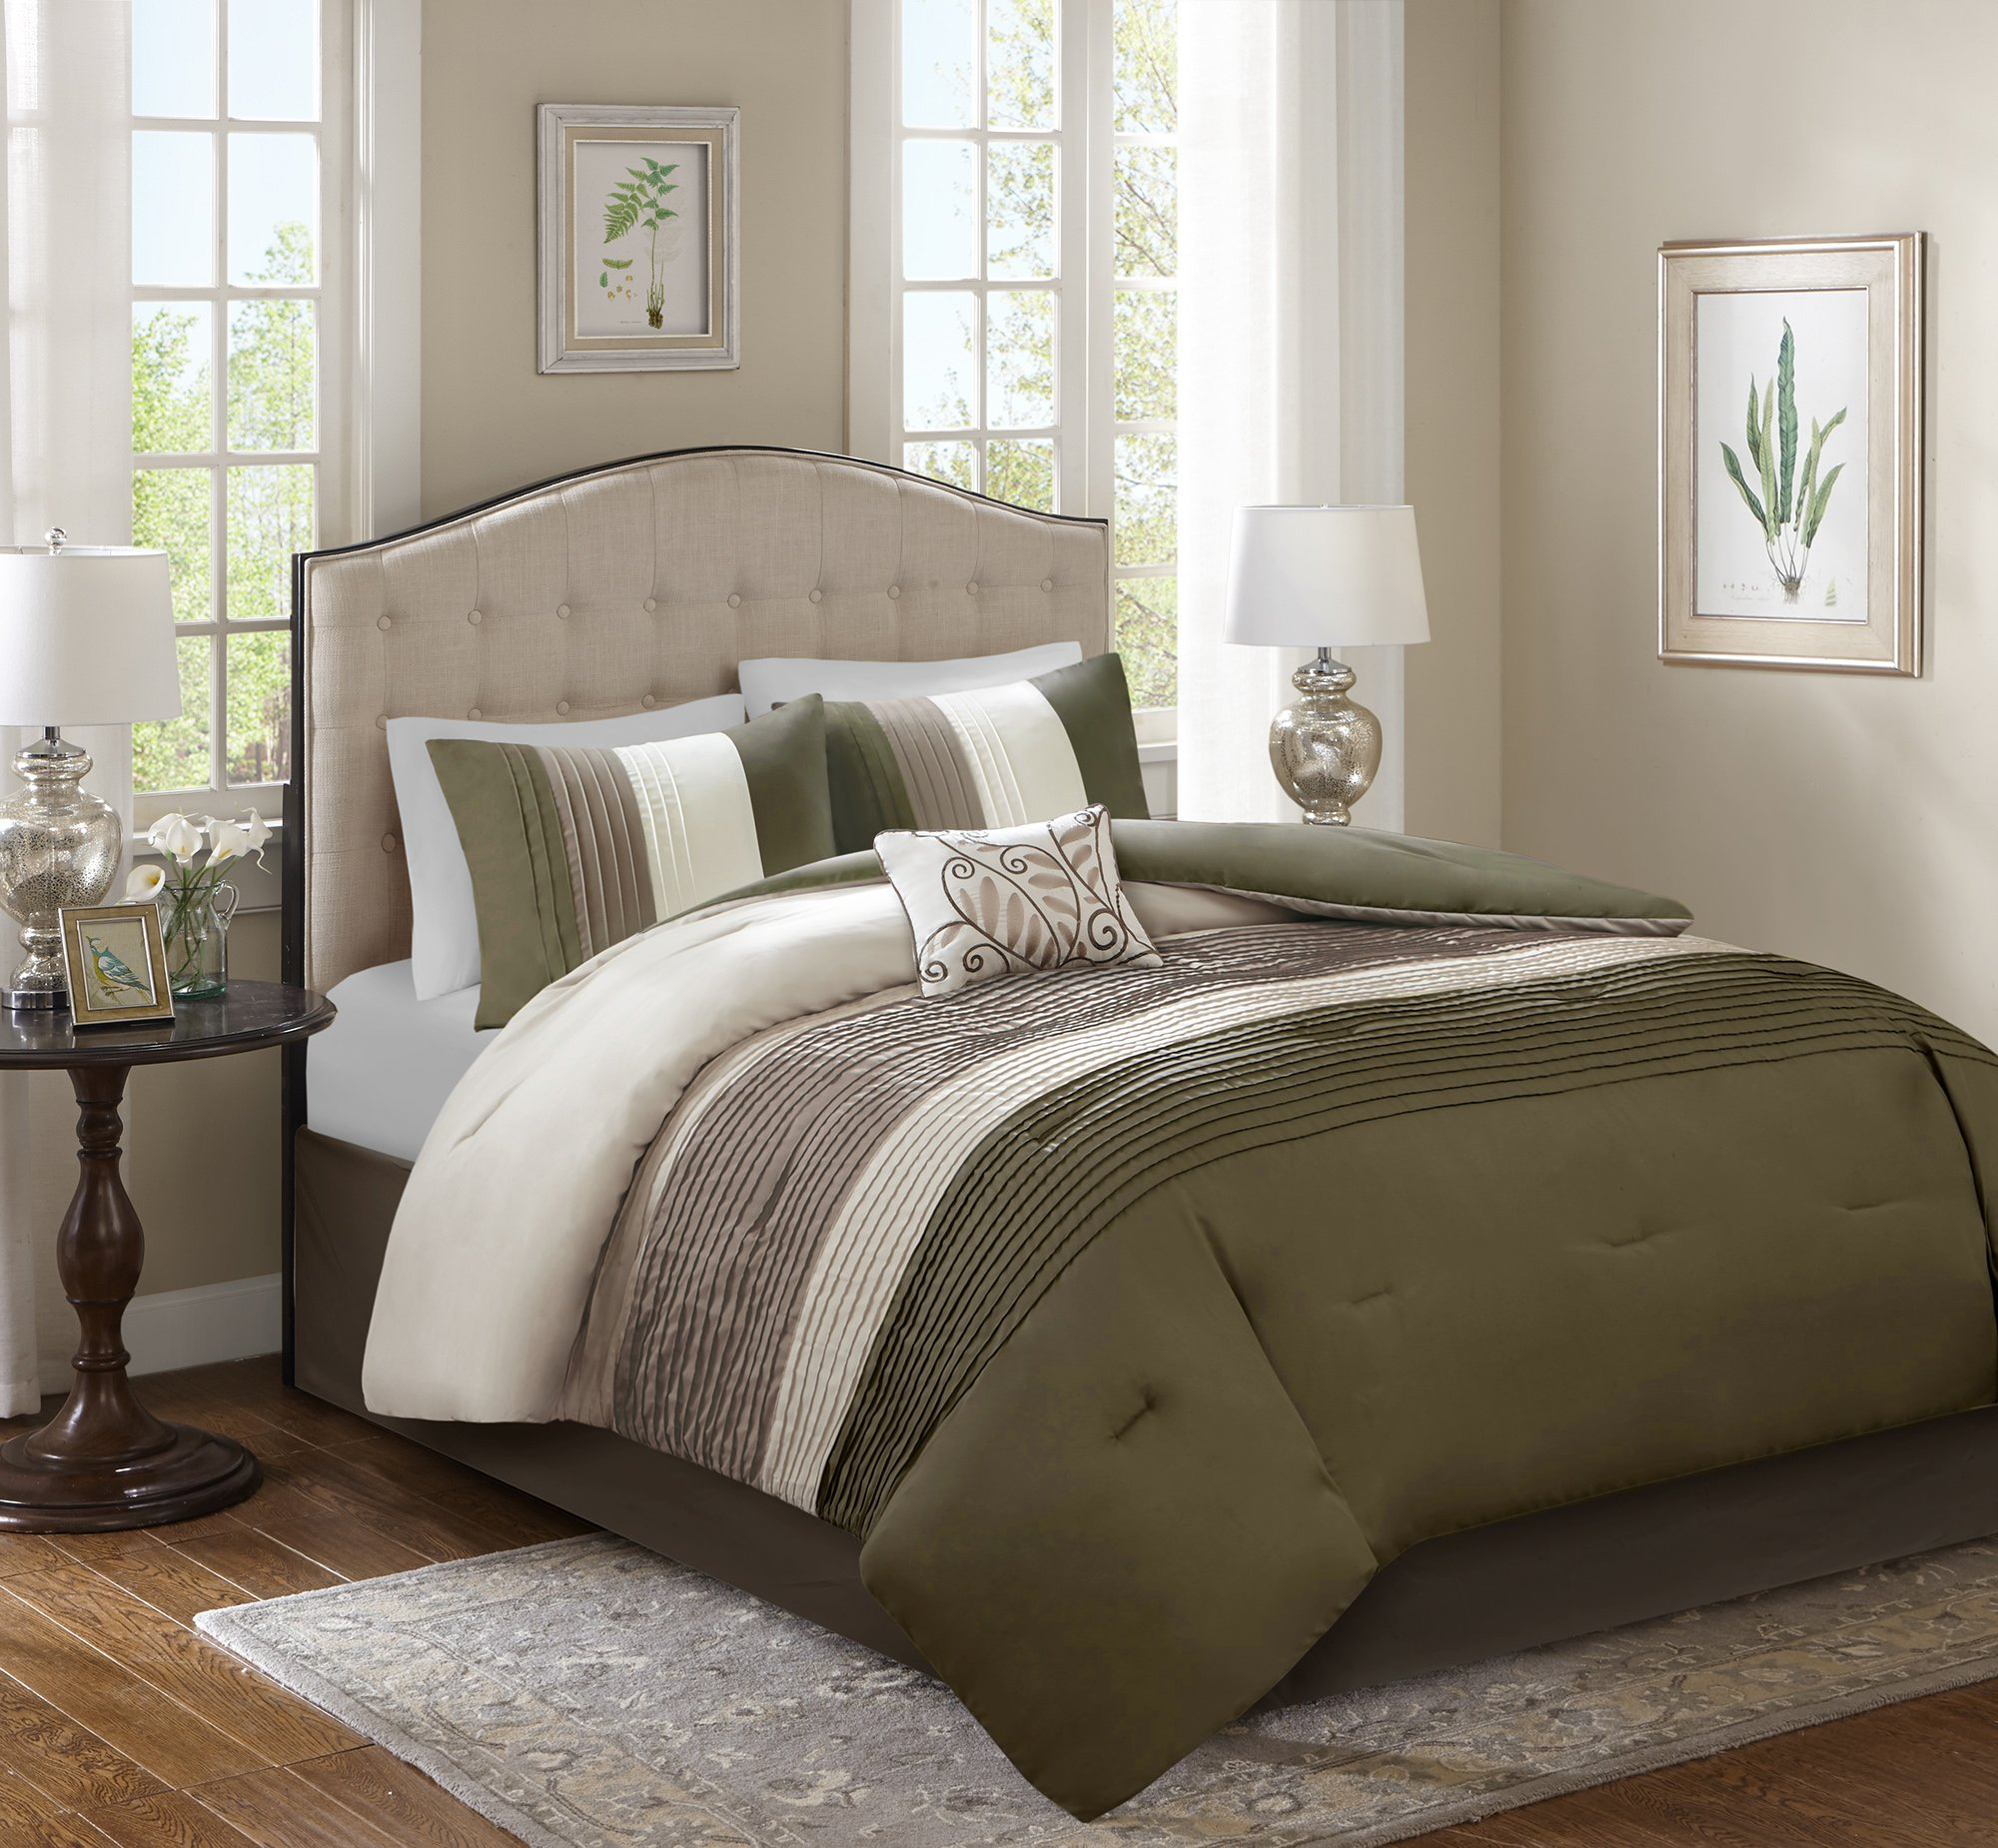 Comfort Spaces – Windsor Comforter Set - 5 Piece – Khaki, Brown, Ivory – Pintuck pattern – Full/Queen size, includes 1 Comforter, 2 Shams, 1 Decorative Pillow, 1 Bed Skirt